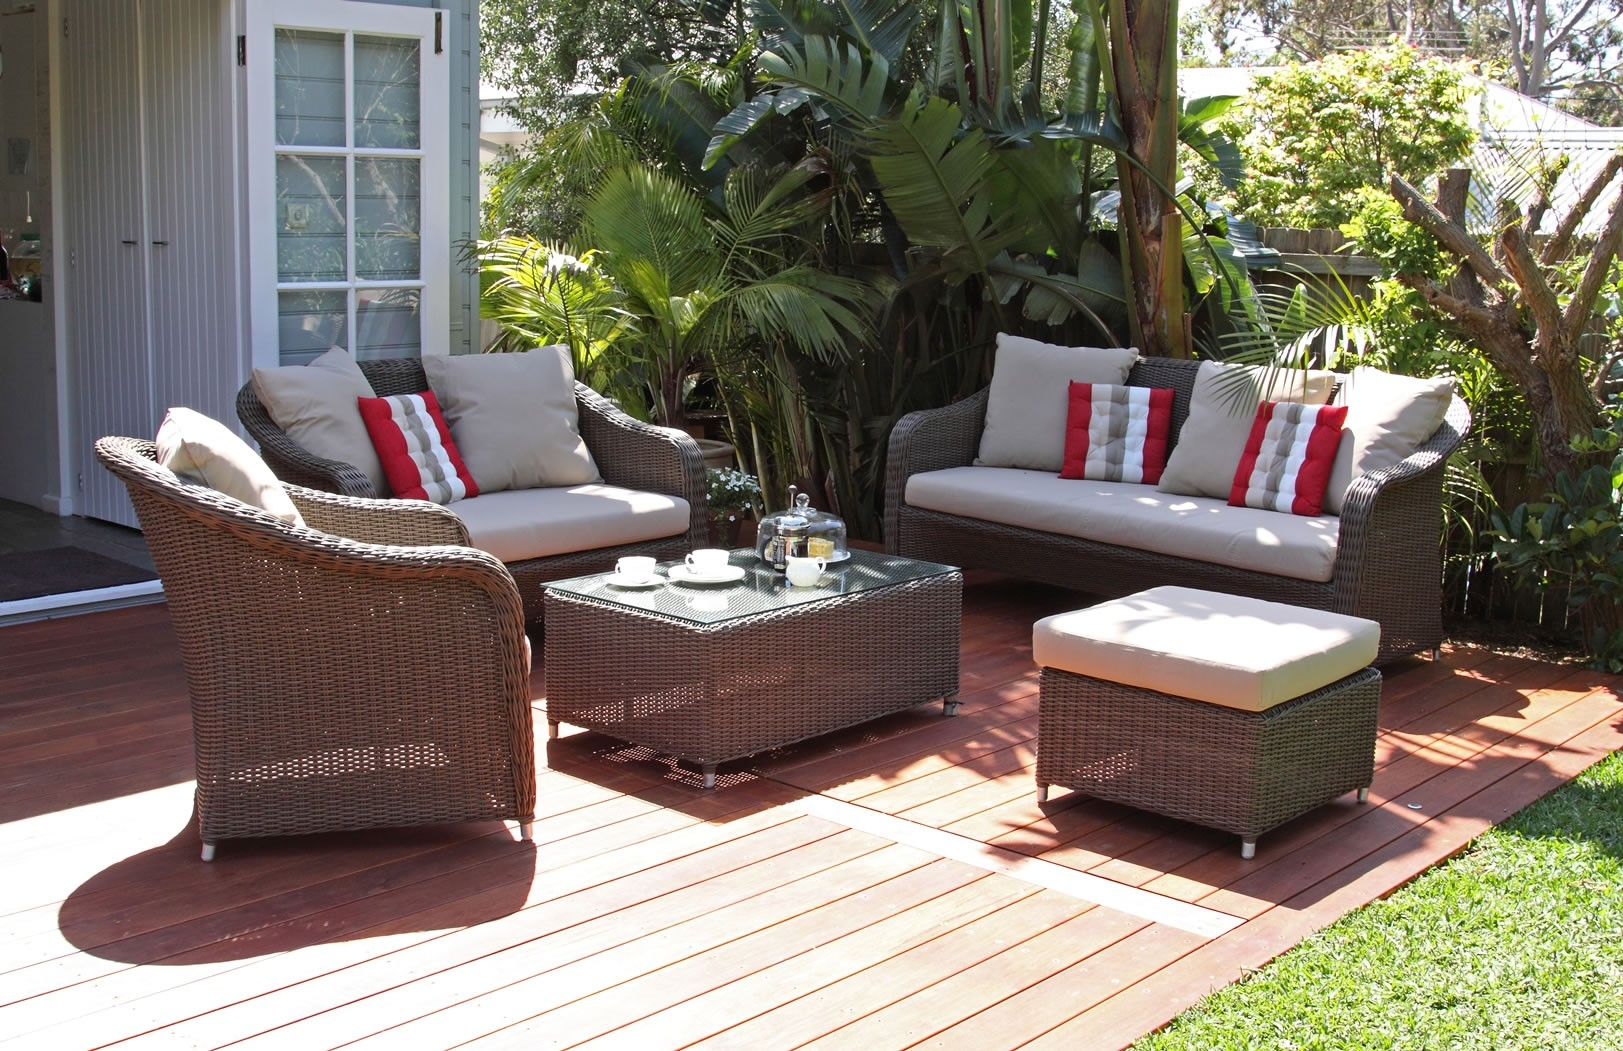 Glamorous Outdoor Lounging Furniture Lounge Chairs Outdoor Inside Outdoor Sofas And Chairs (Image 10 of 15)